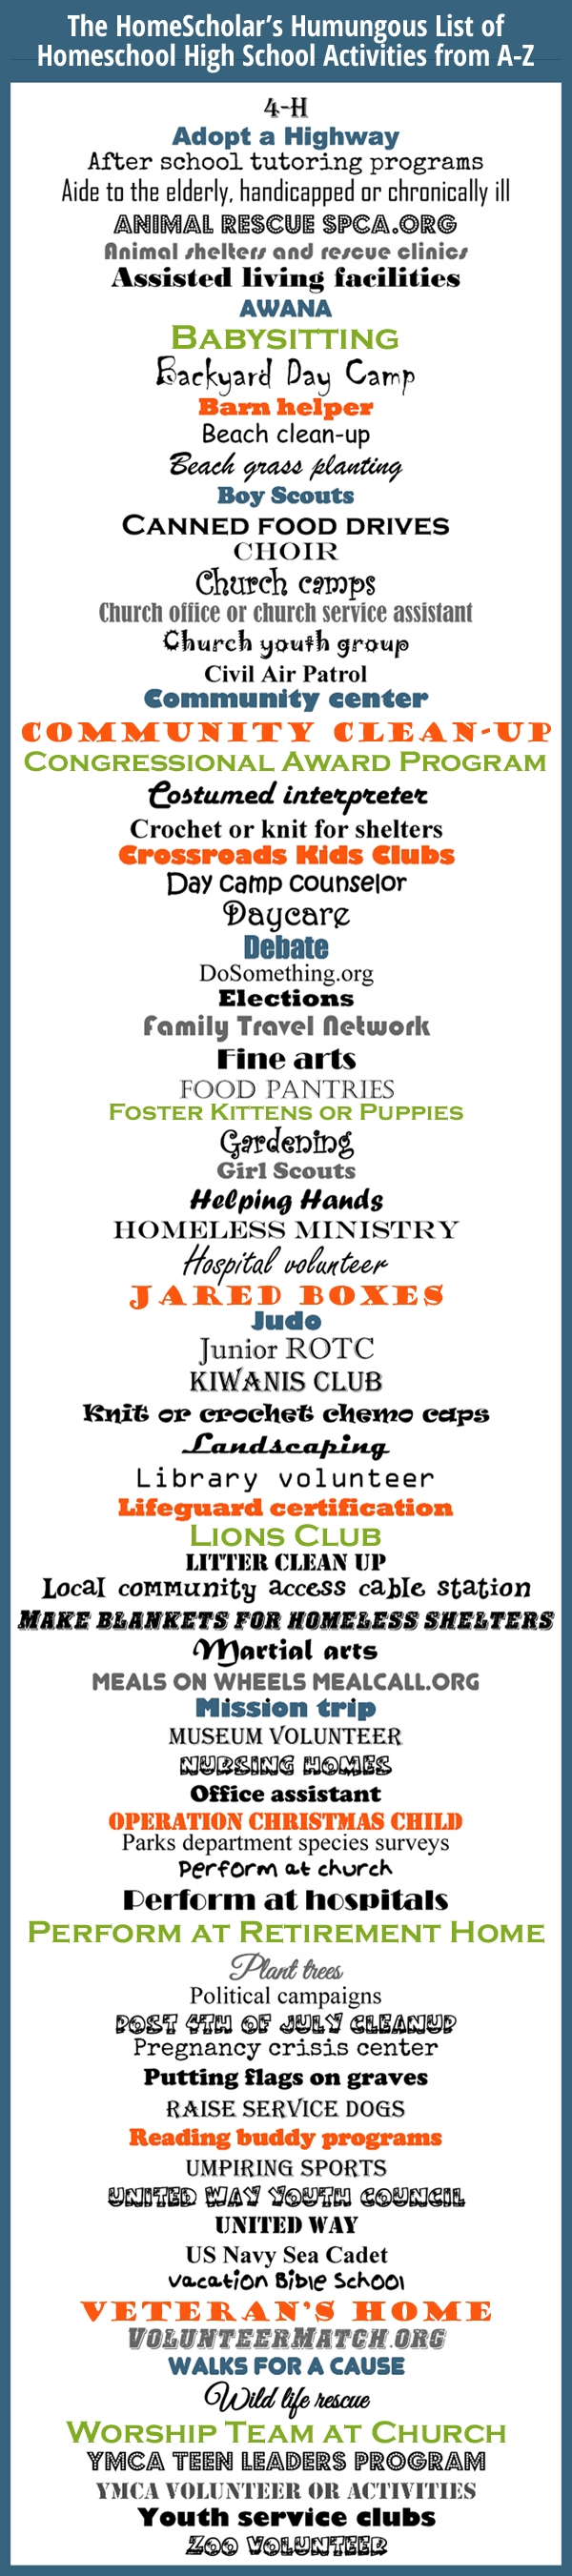 10 Fashionable Service Project Ideas For Highschool Students pinlee binz the homescholar on homeschool infographics 3 2020